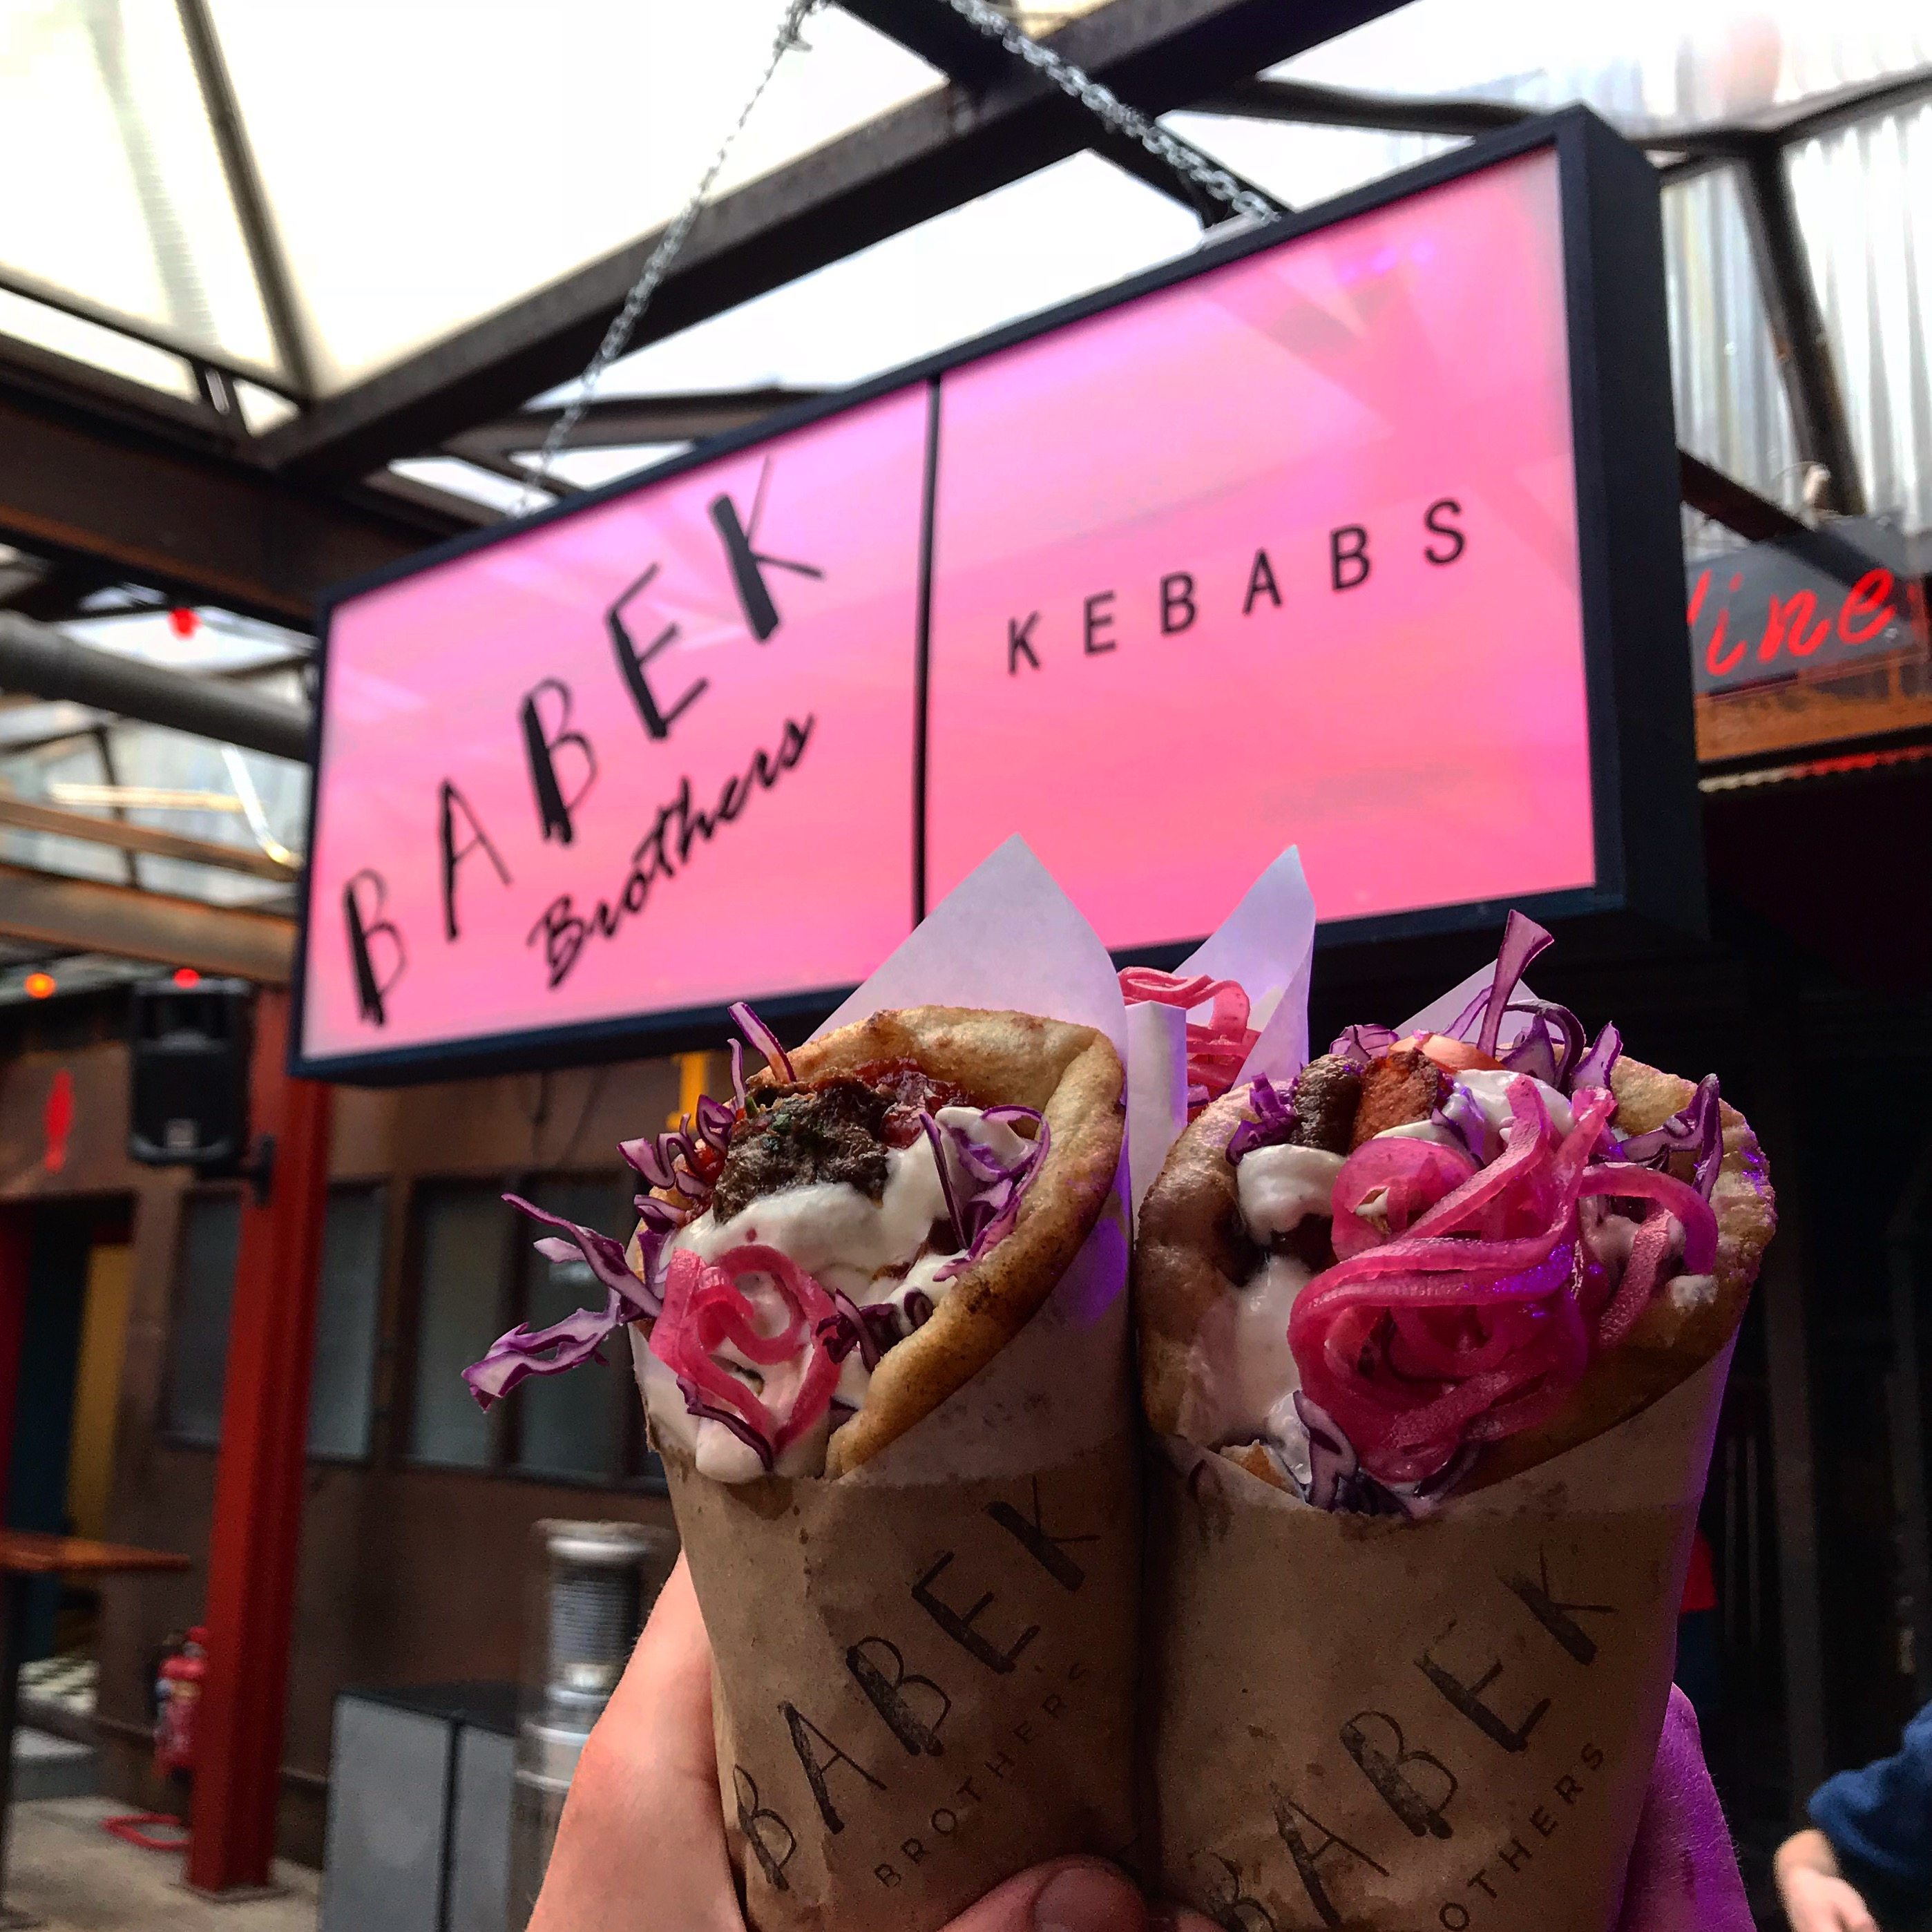 couple of kebabs